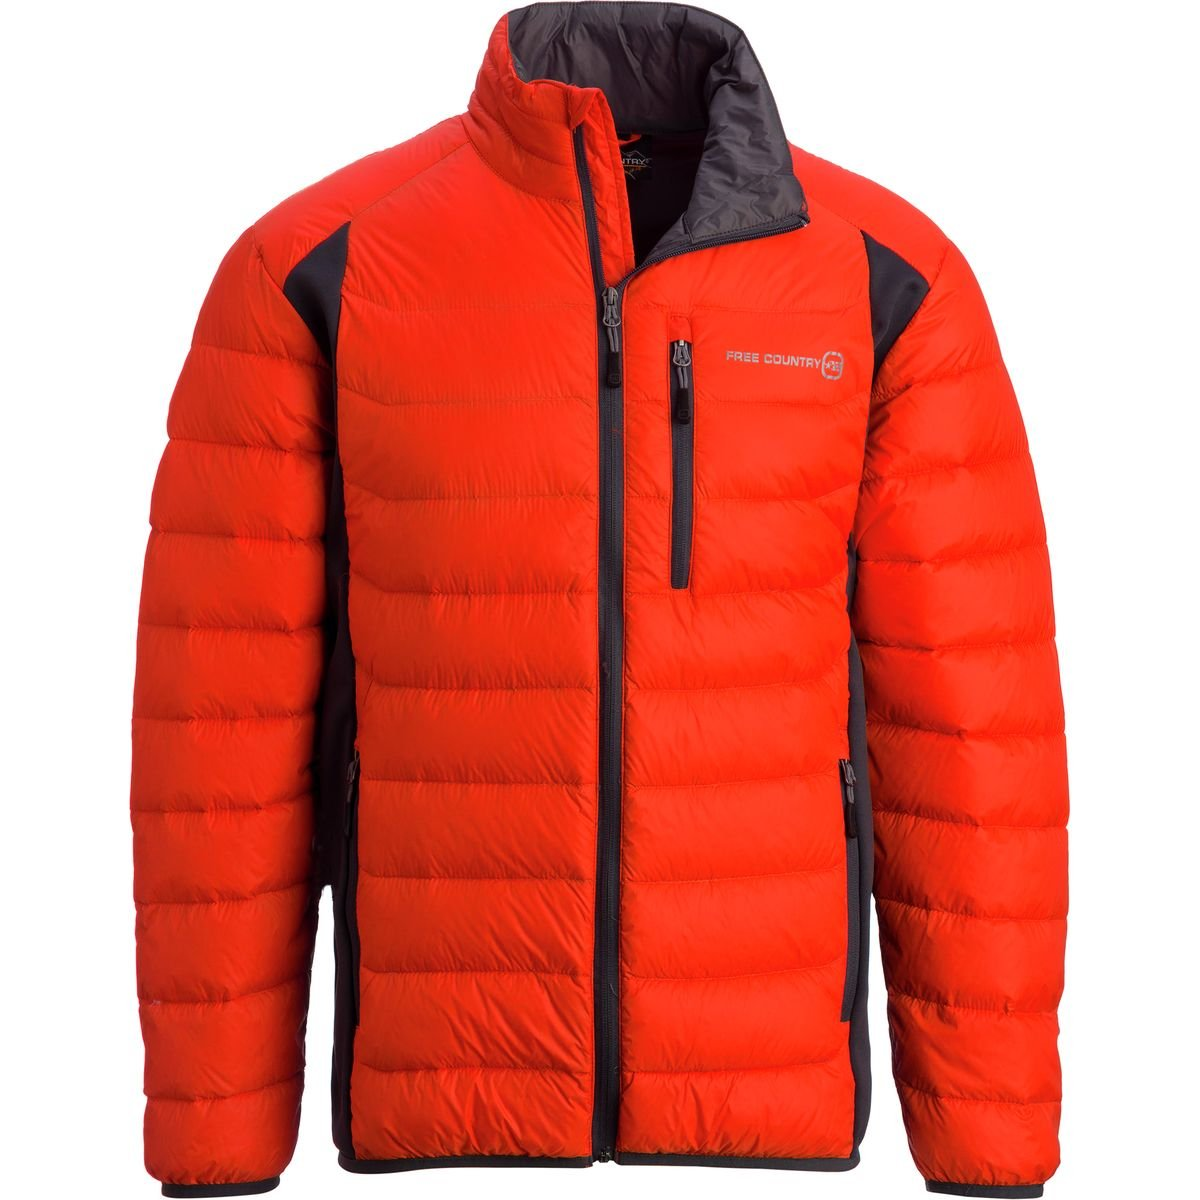 5cf8a3b20 Free Country Mens Tech-Panel Down Puffer Jacket at Amazon Men's ...